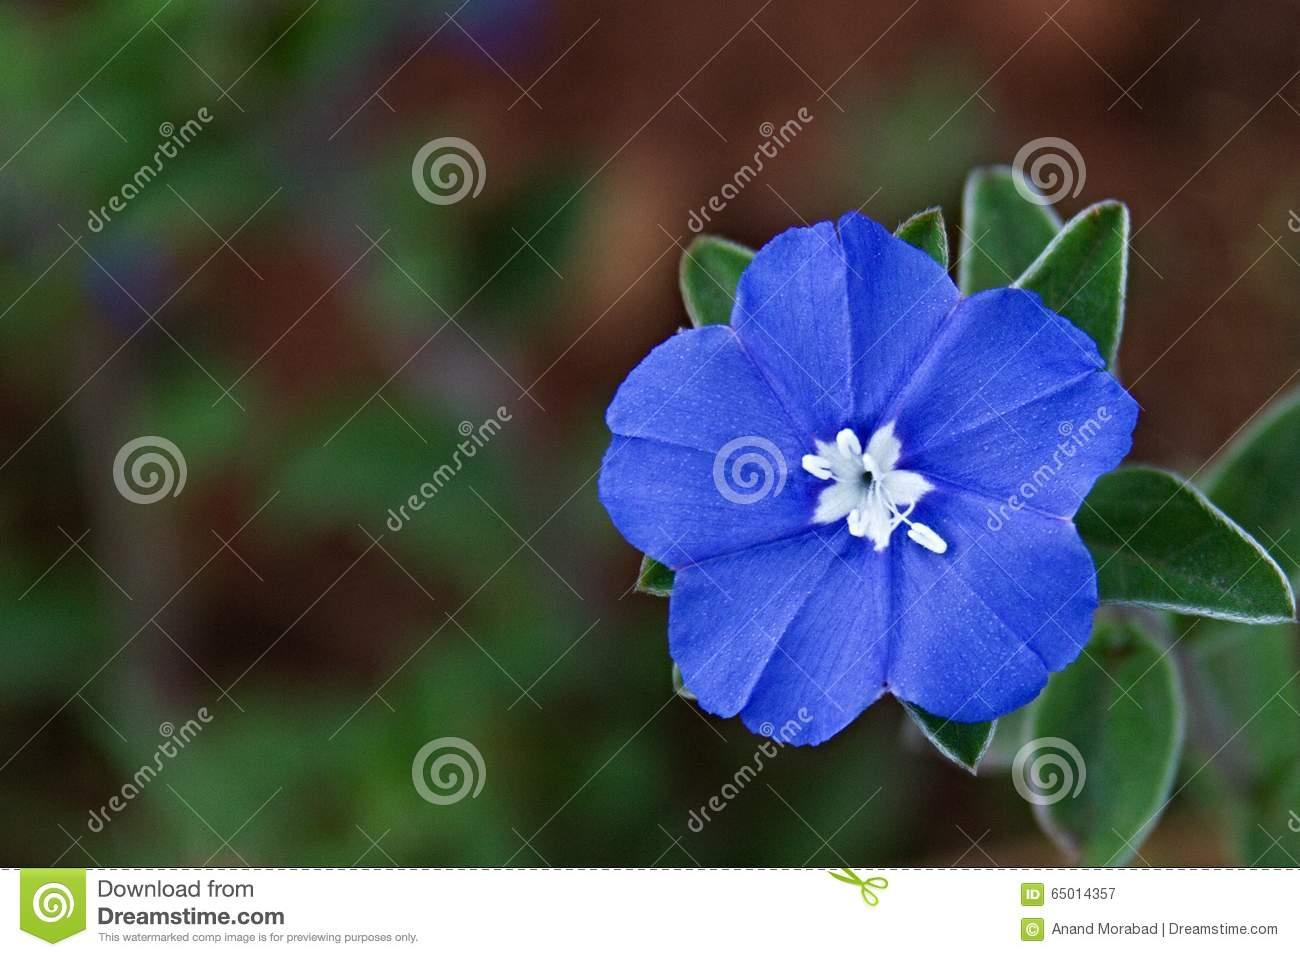 Exelent blue flower with white center image collection images for single baby blue eyes flower with white center stock image image izmirmasajfo